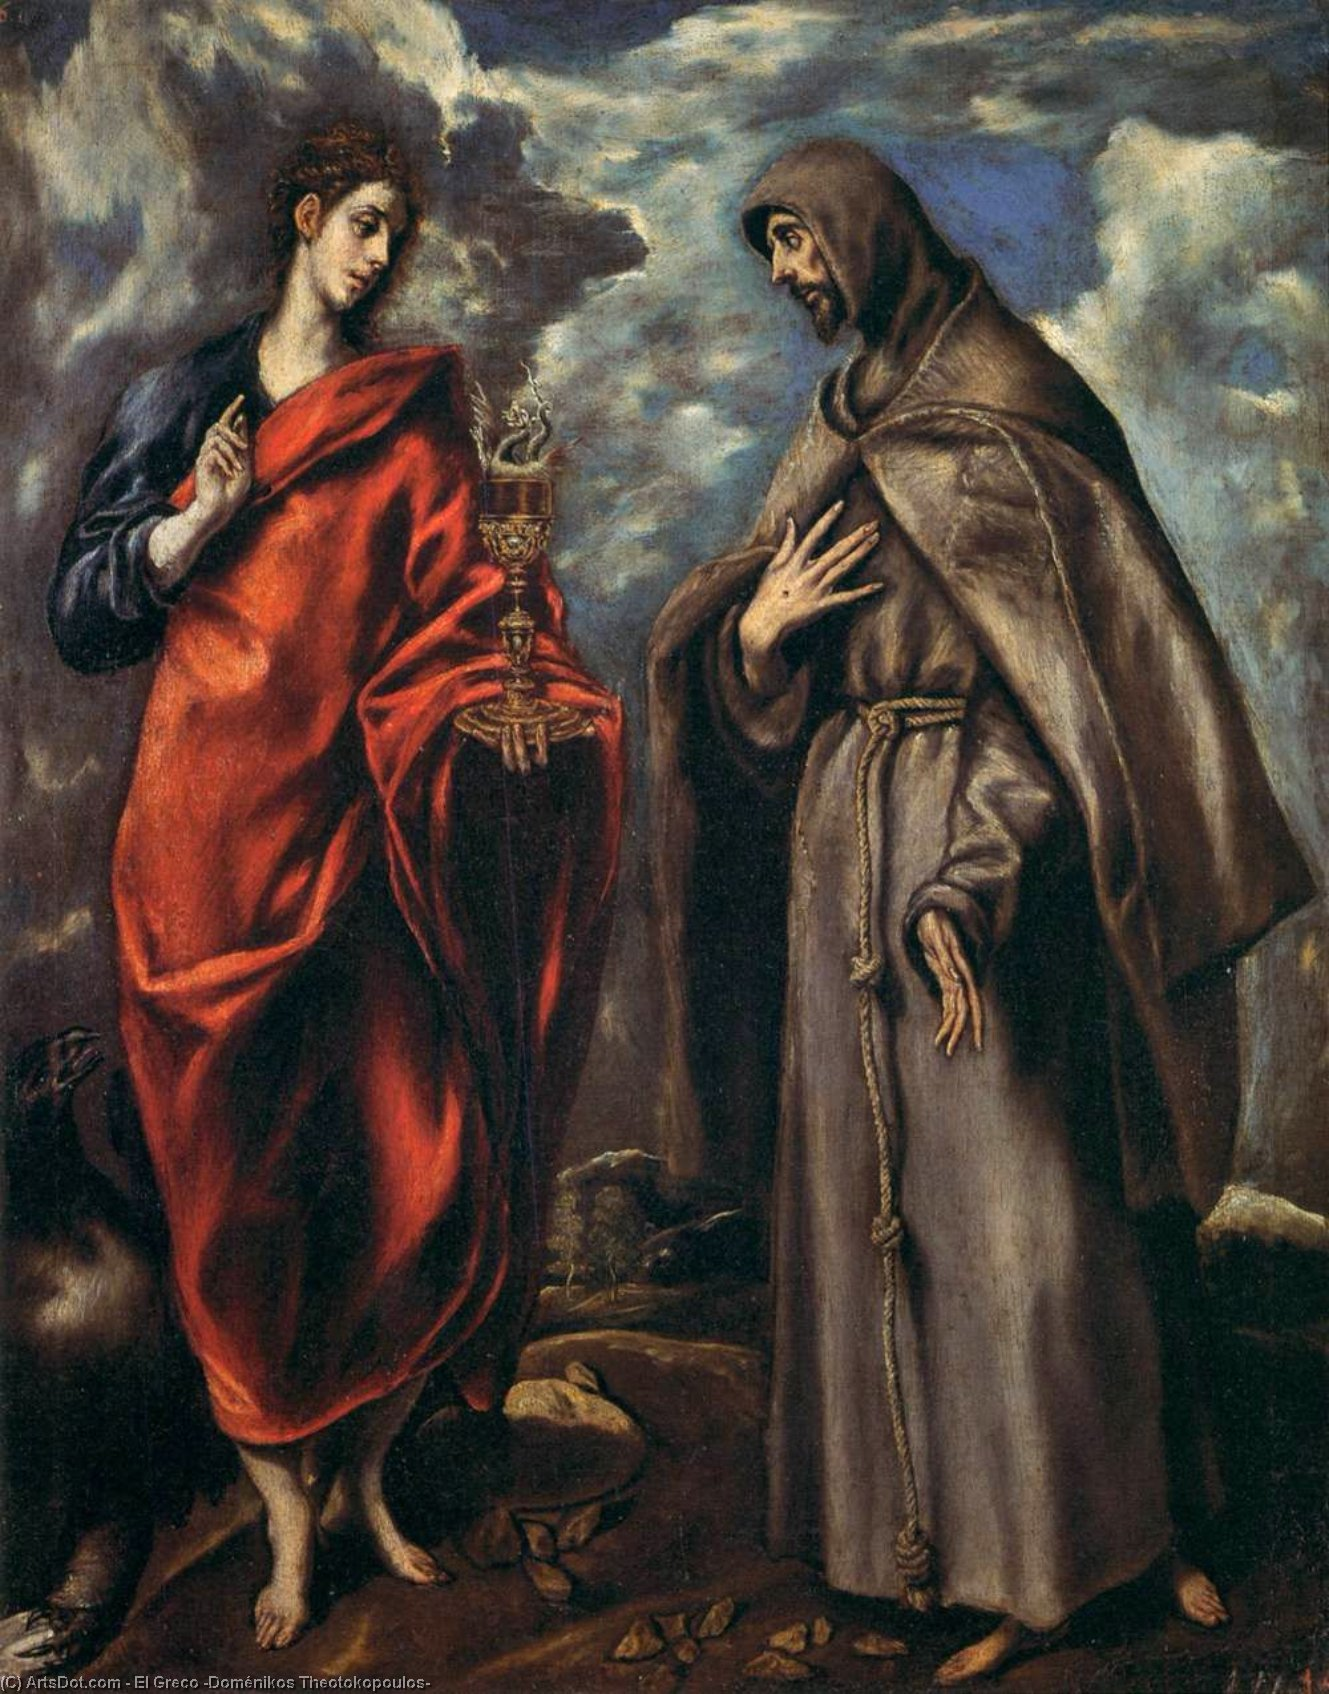 Wikioo.org - The Encyclopedia of Fine Arts - Painting, Artwork by El Greco (Doménikos Theotokopoulos) - Sts John and Francis